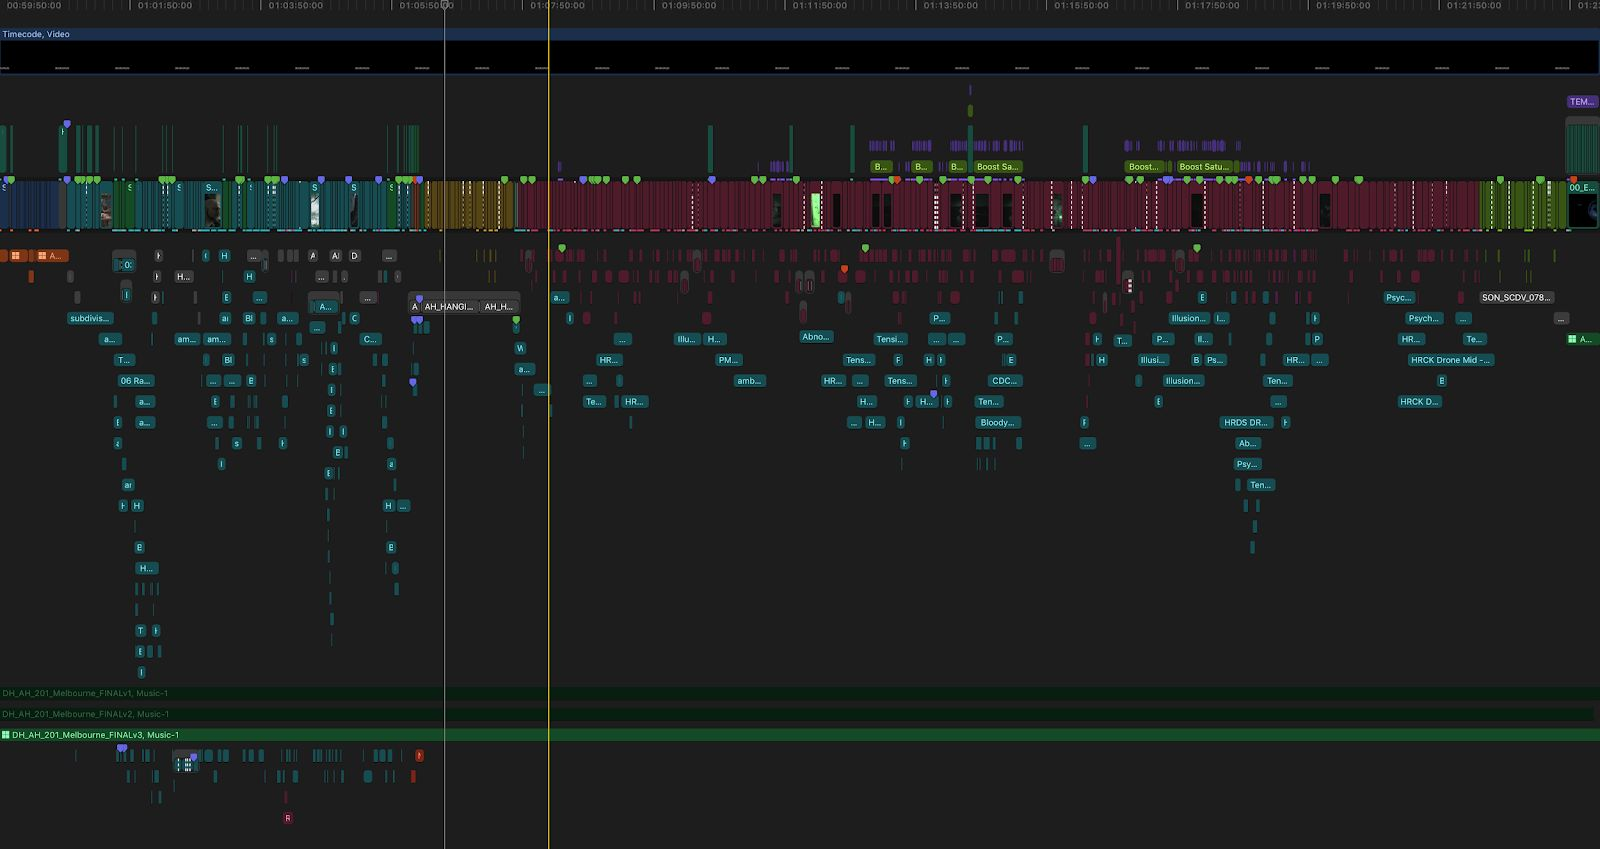 FCPX WORKFLOw HAUNTER Page 32 Image 0001